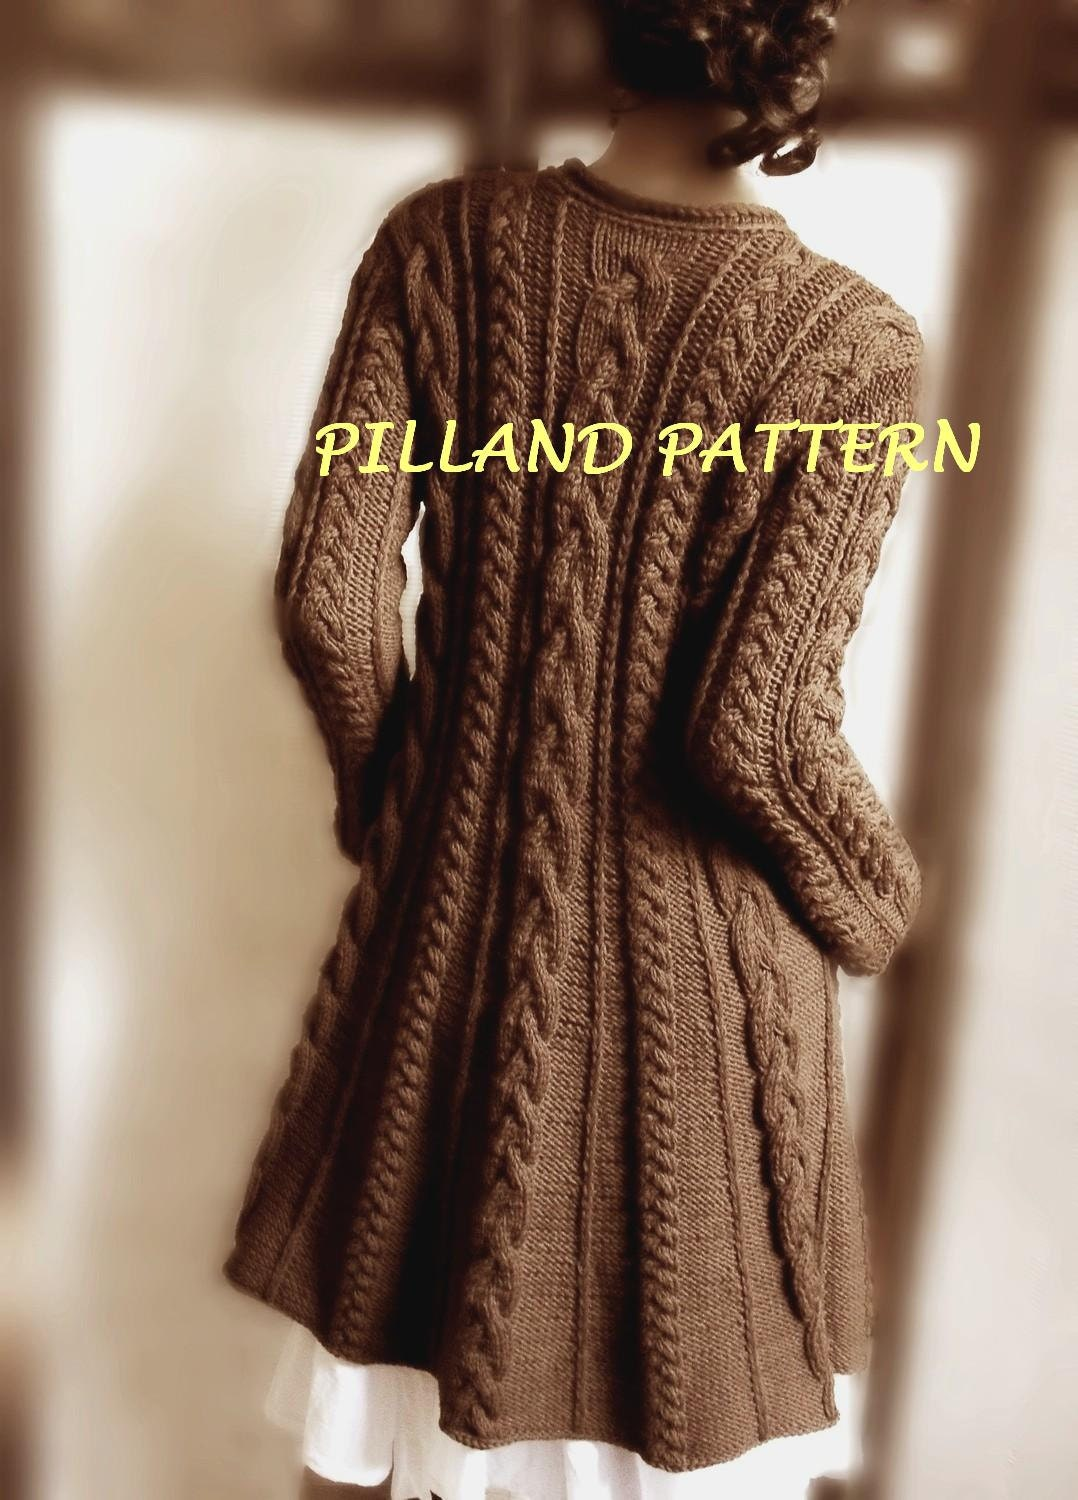 You searched for: hand knit sweater! Etsy is the home to thousands of handmade, vintage, and one-of-a-kind products and gifts related to your search. No matter what you're looking for or where you are in the world, our global marketplace of sellers can help you find unique and affordable options. Let's get started!